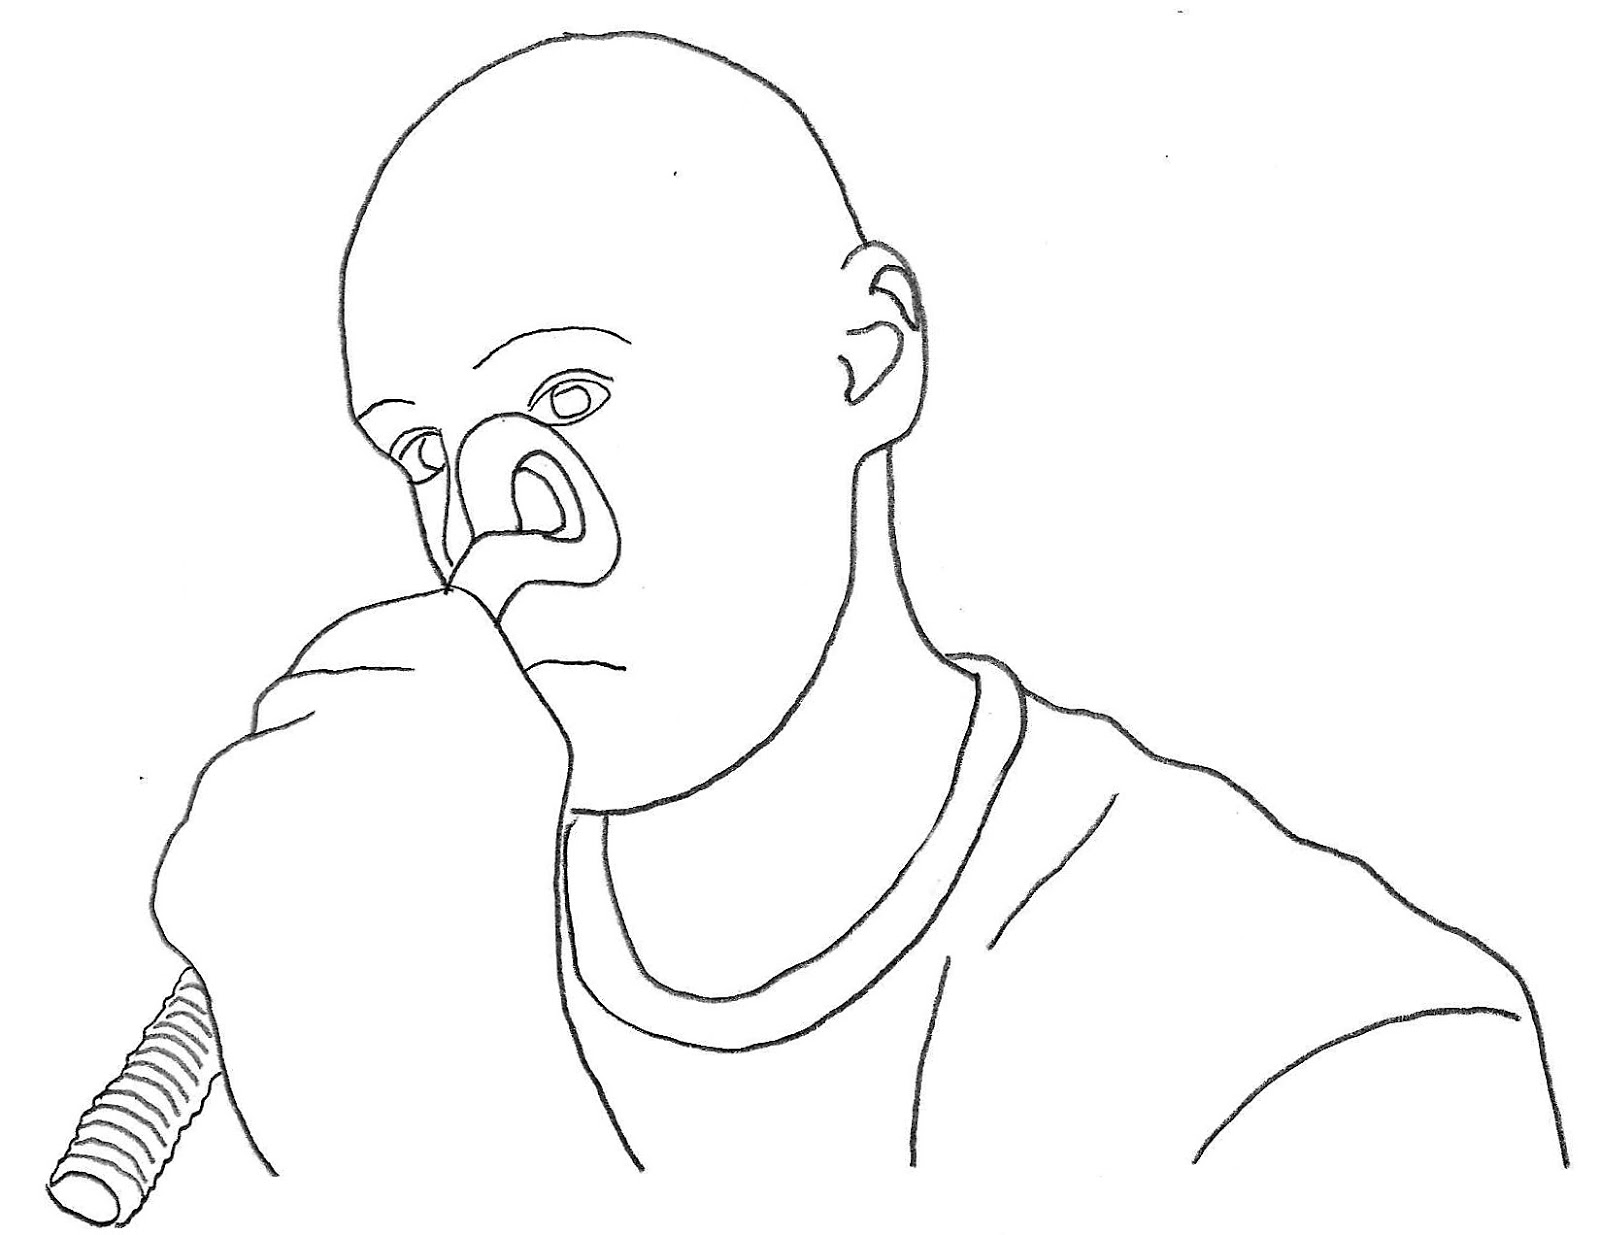 Observed Impulse Myofascial Release For The Face Composure